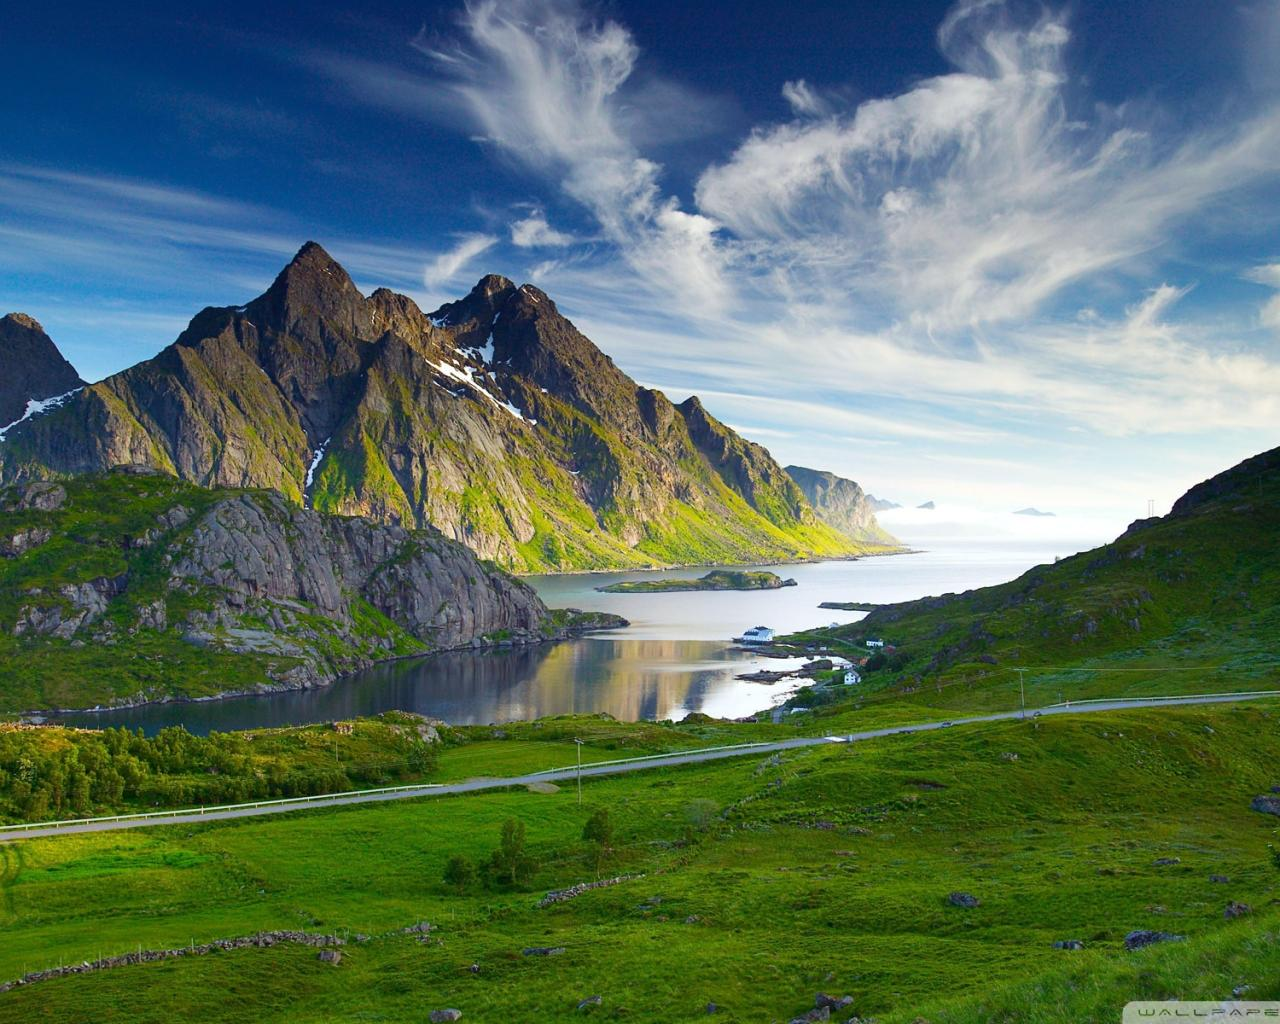 Nordic Landscape background 1280x1024 hd desktop wallpaper download 732